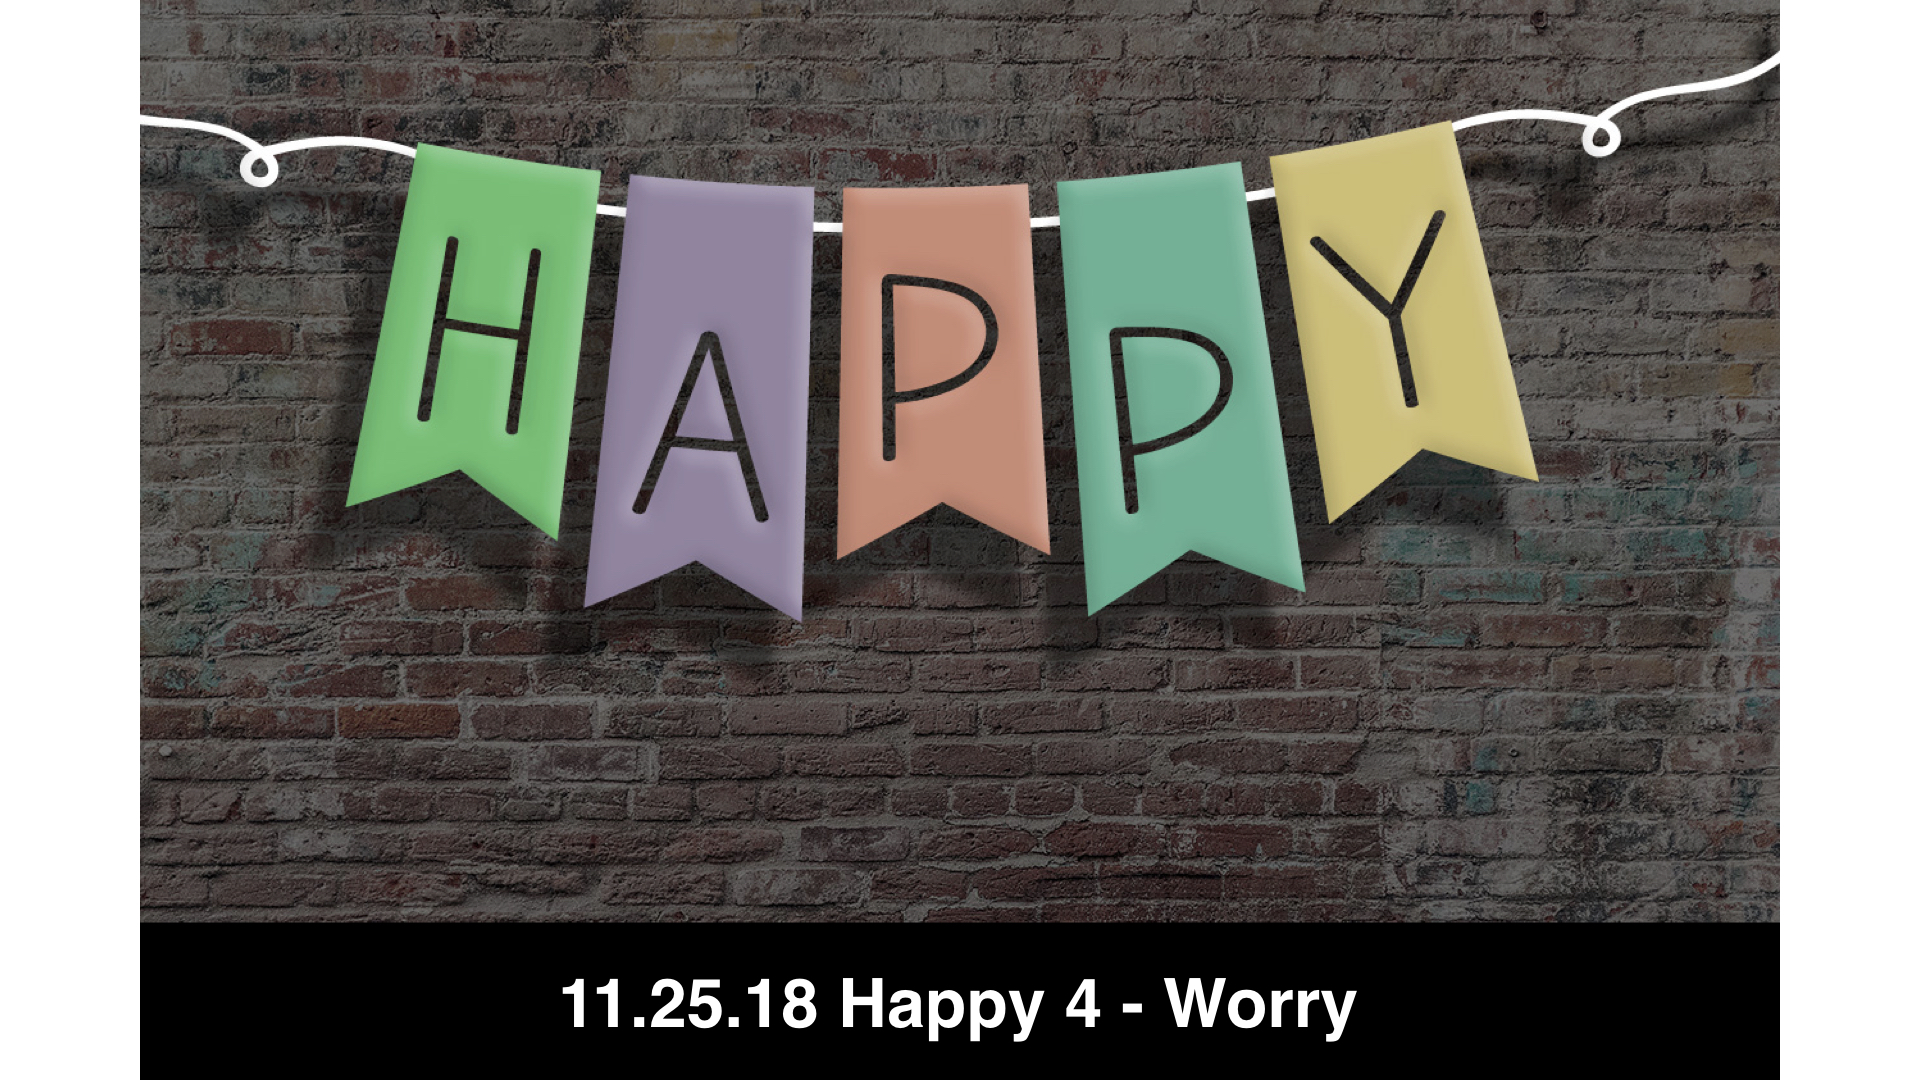 11.25.18 Happy 4 - Worry